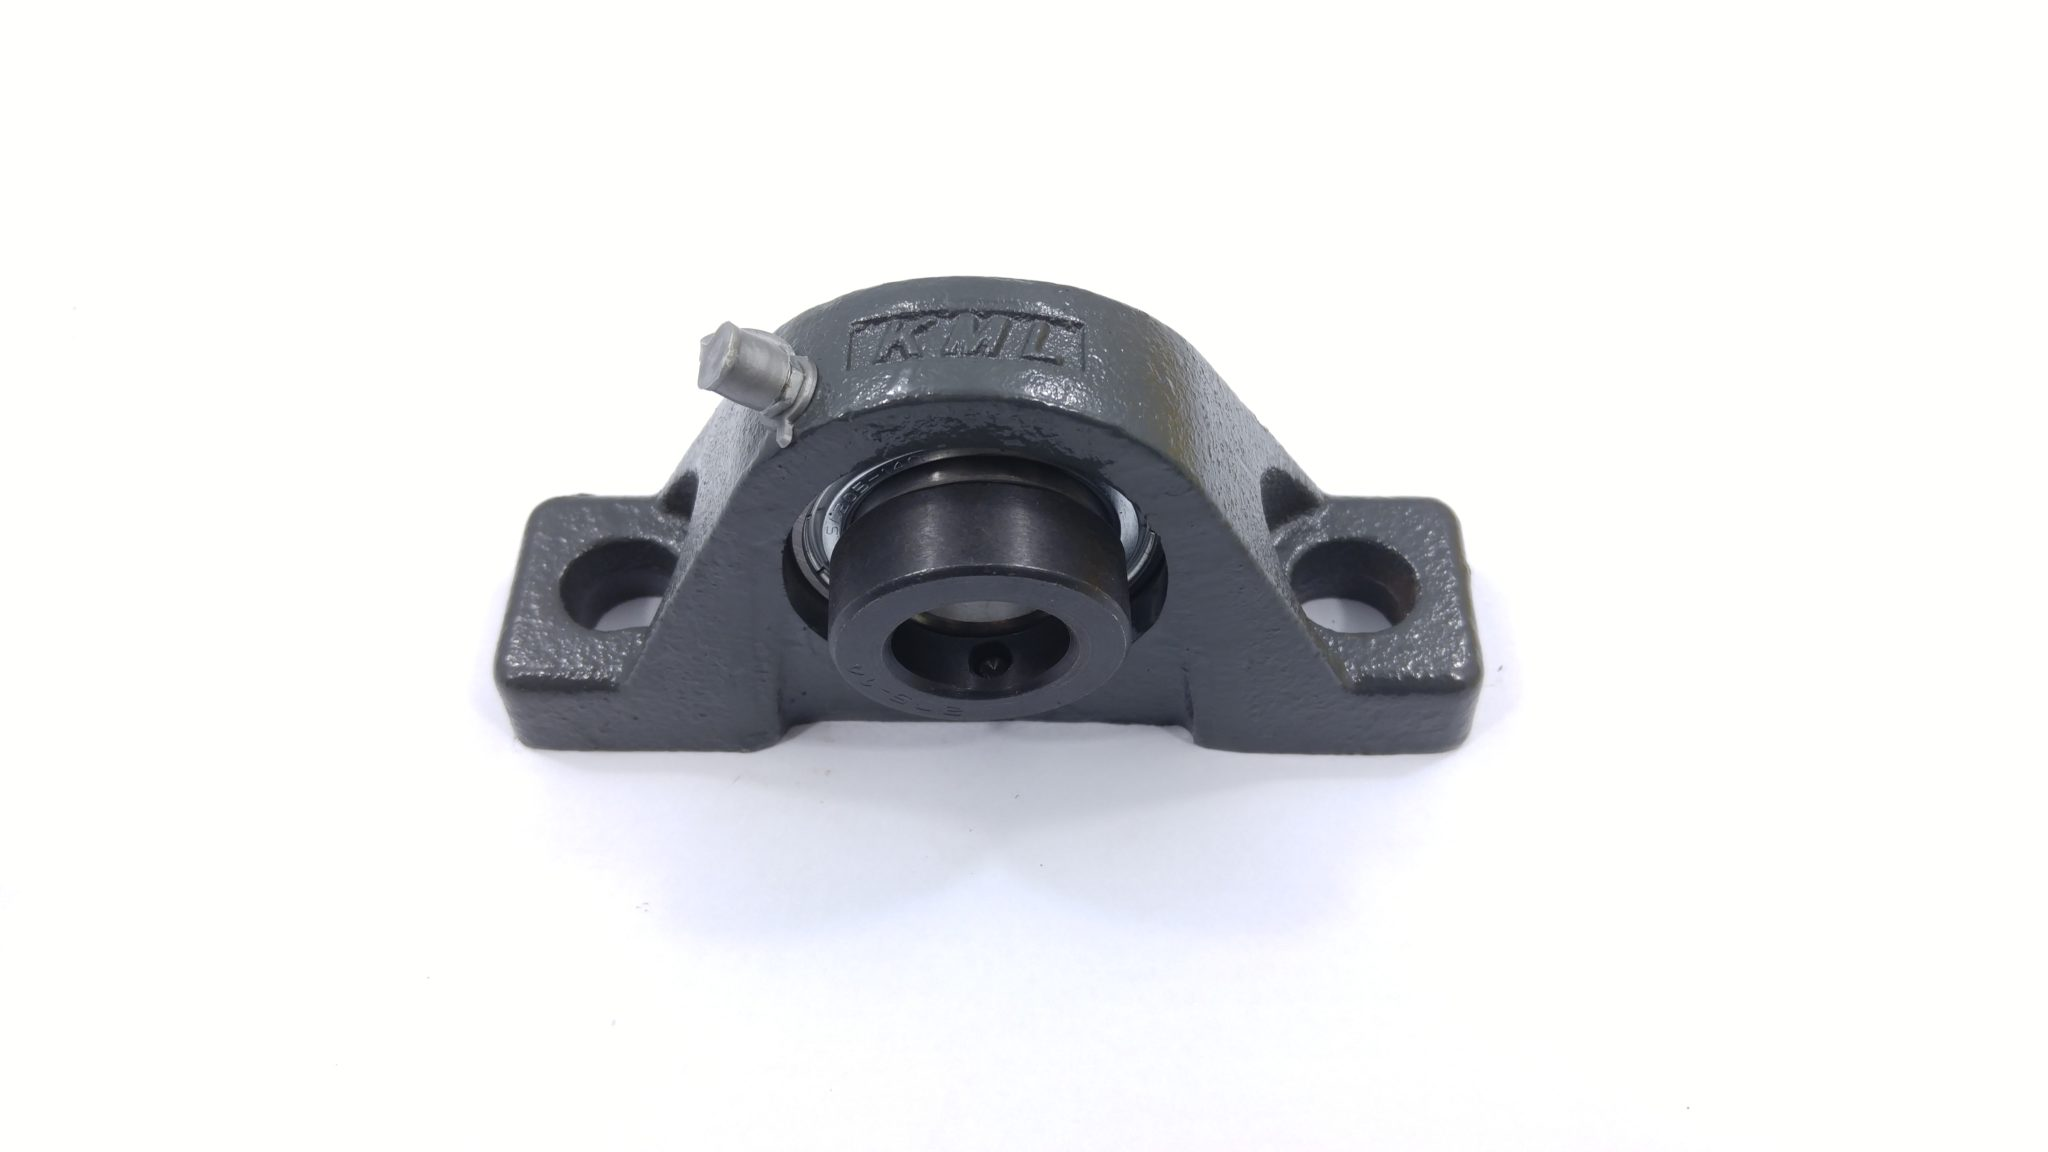 saf watch block bearing to how pillow a install mount link adapter belt style